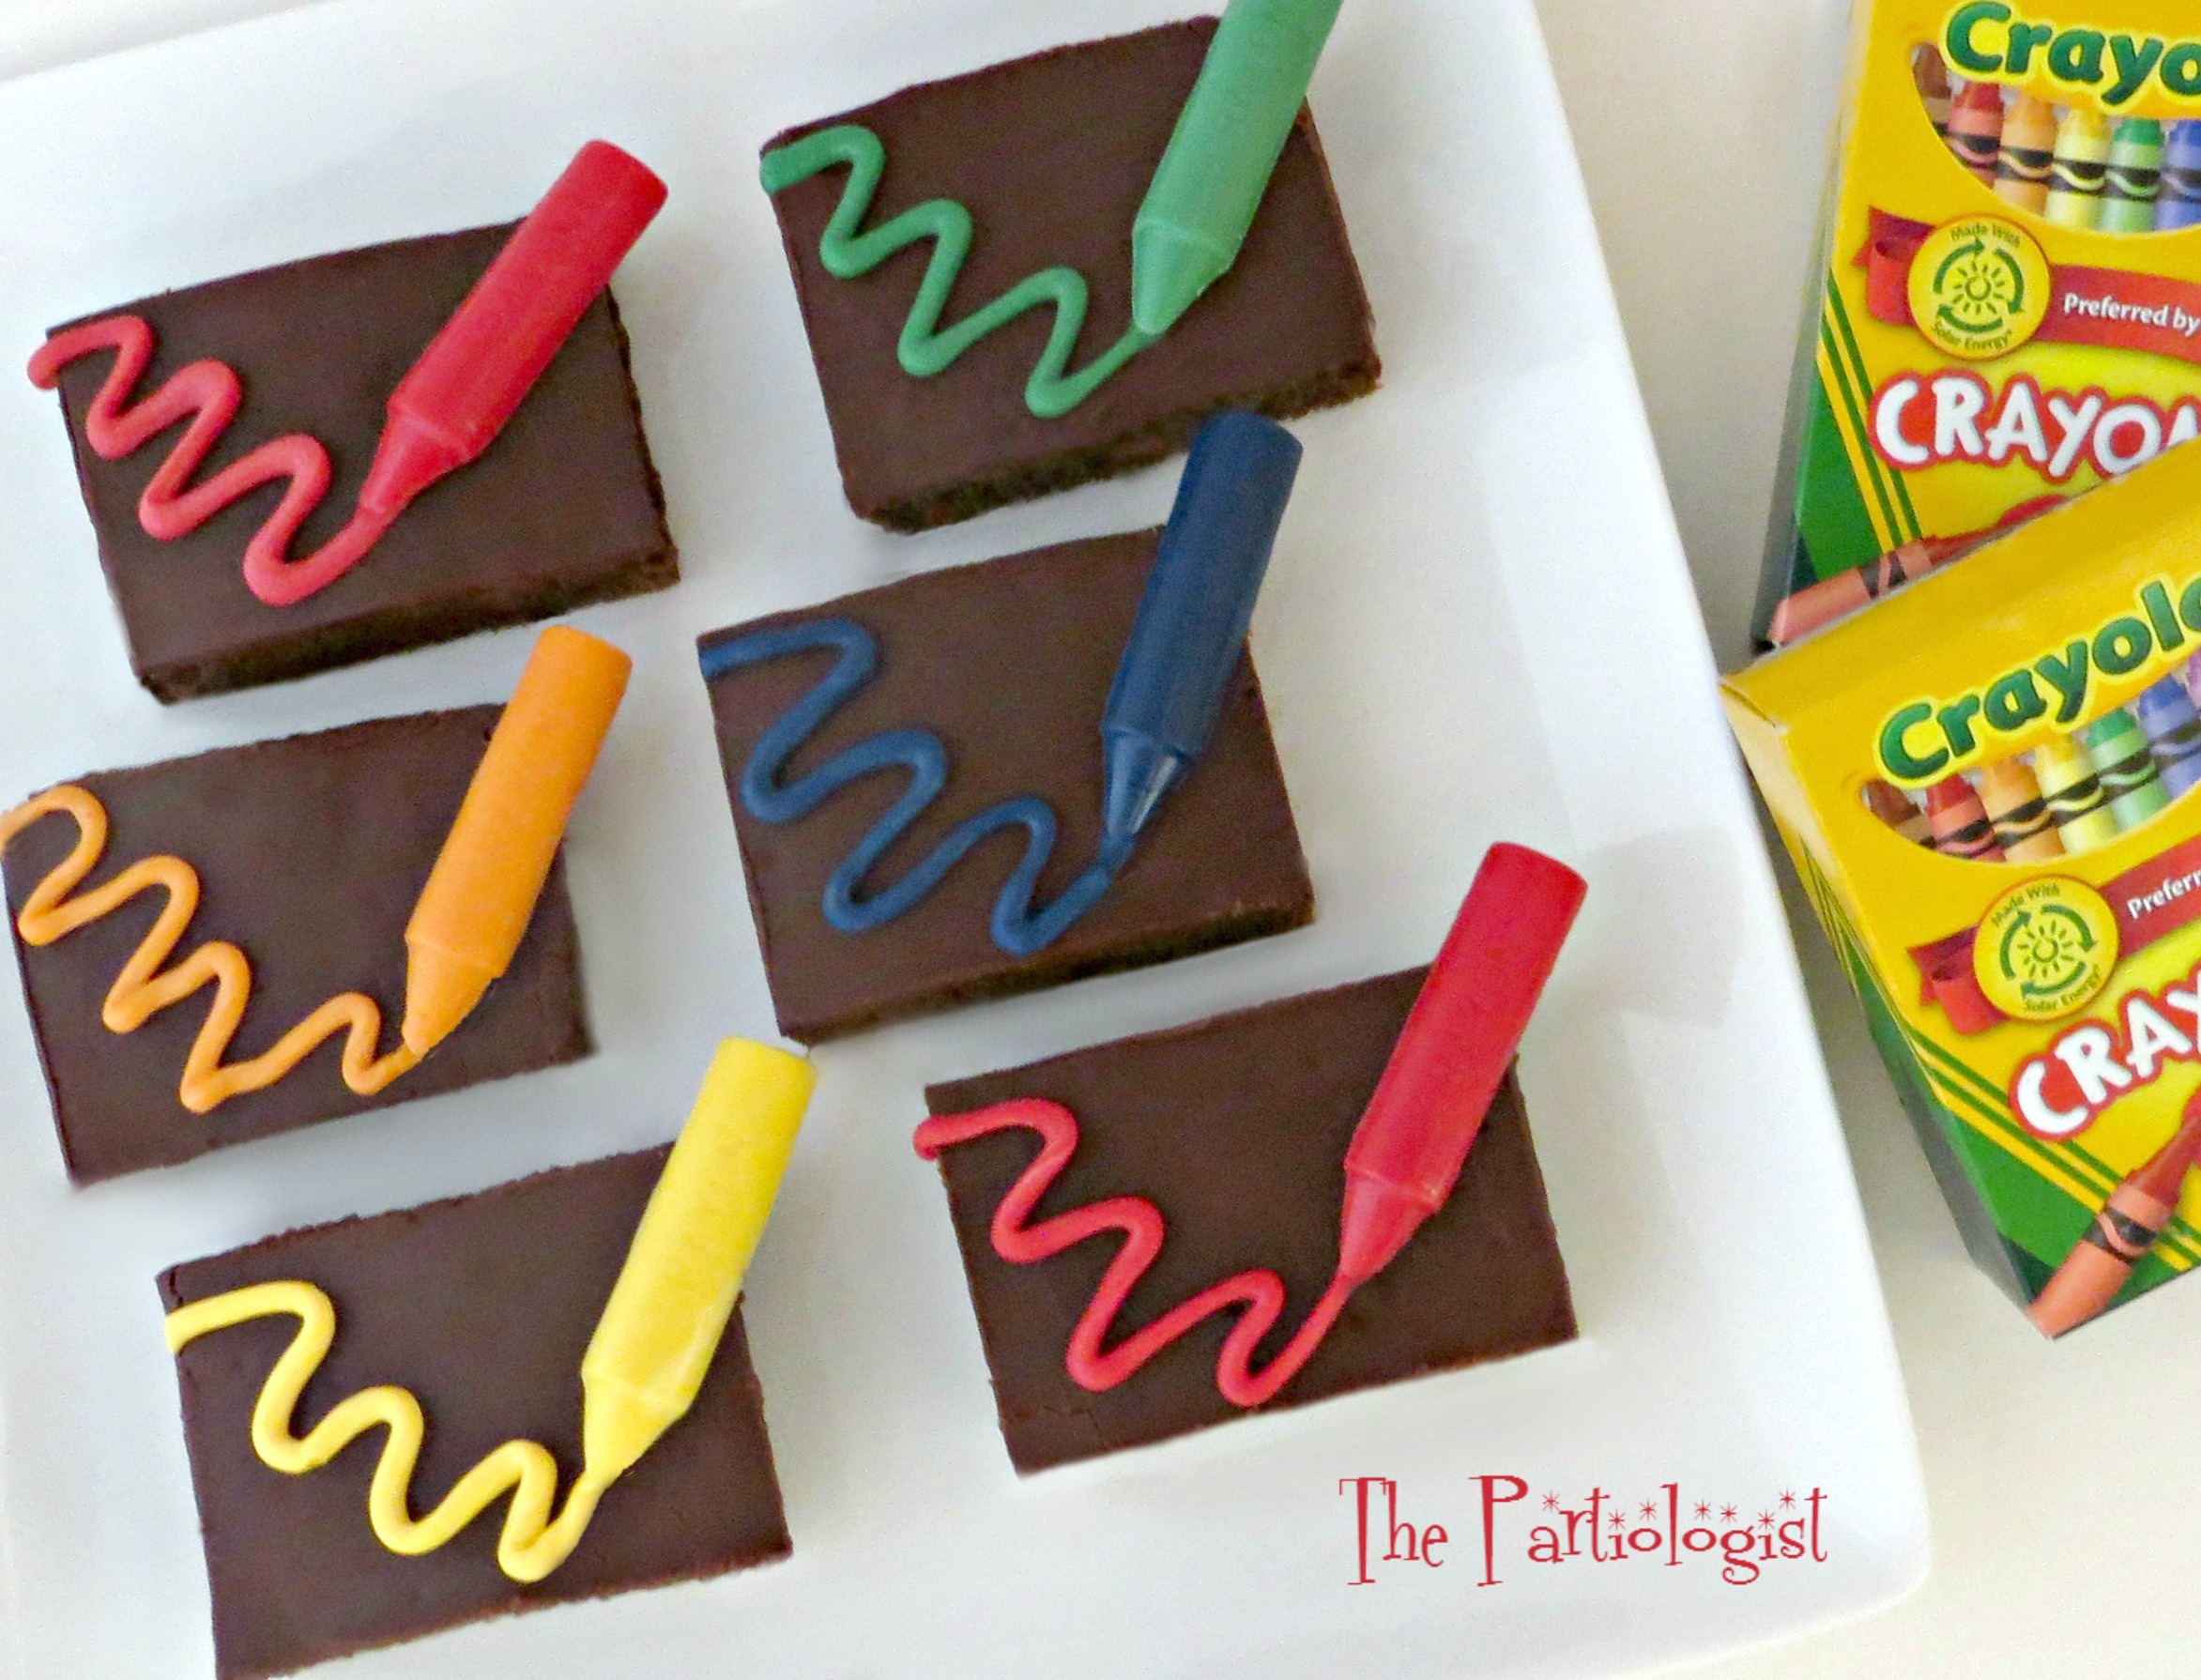 Crayon Scribbled Brownies